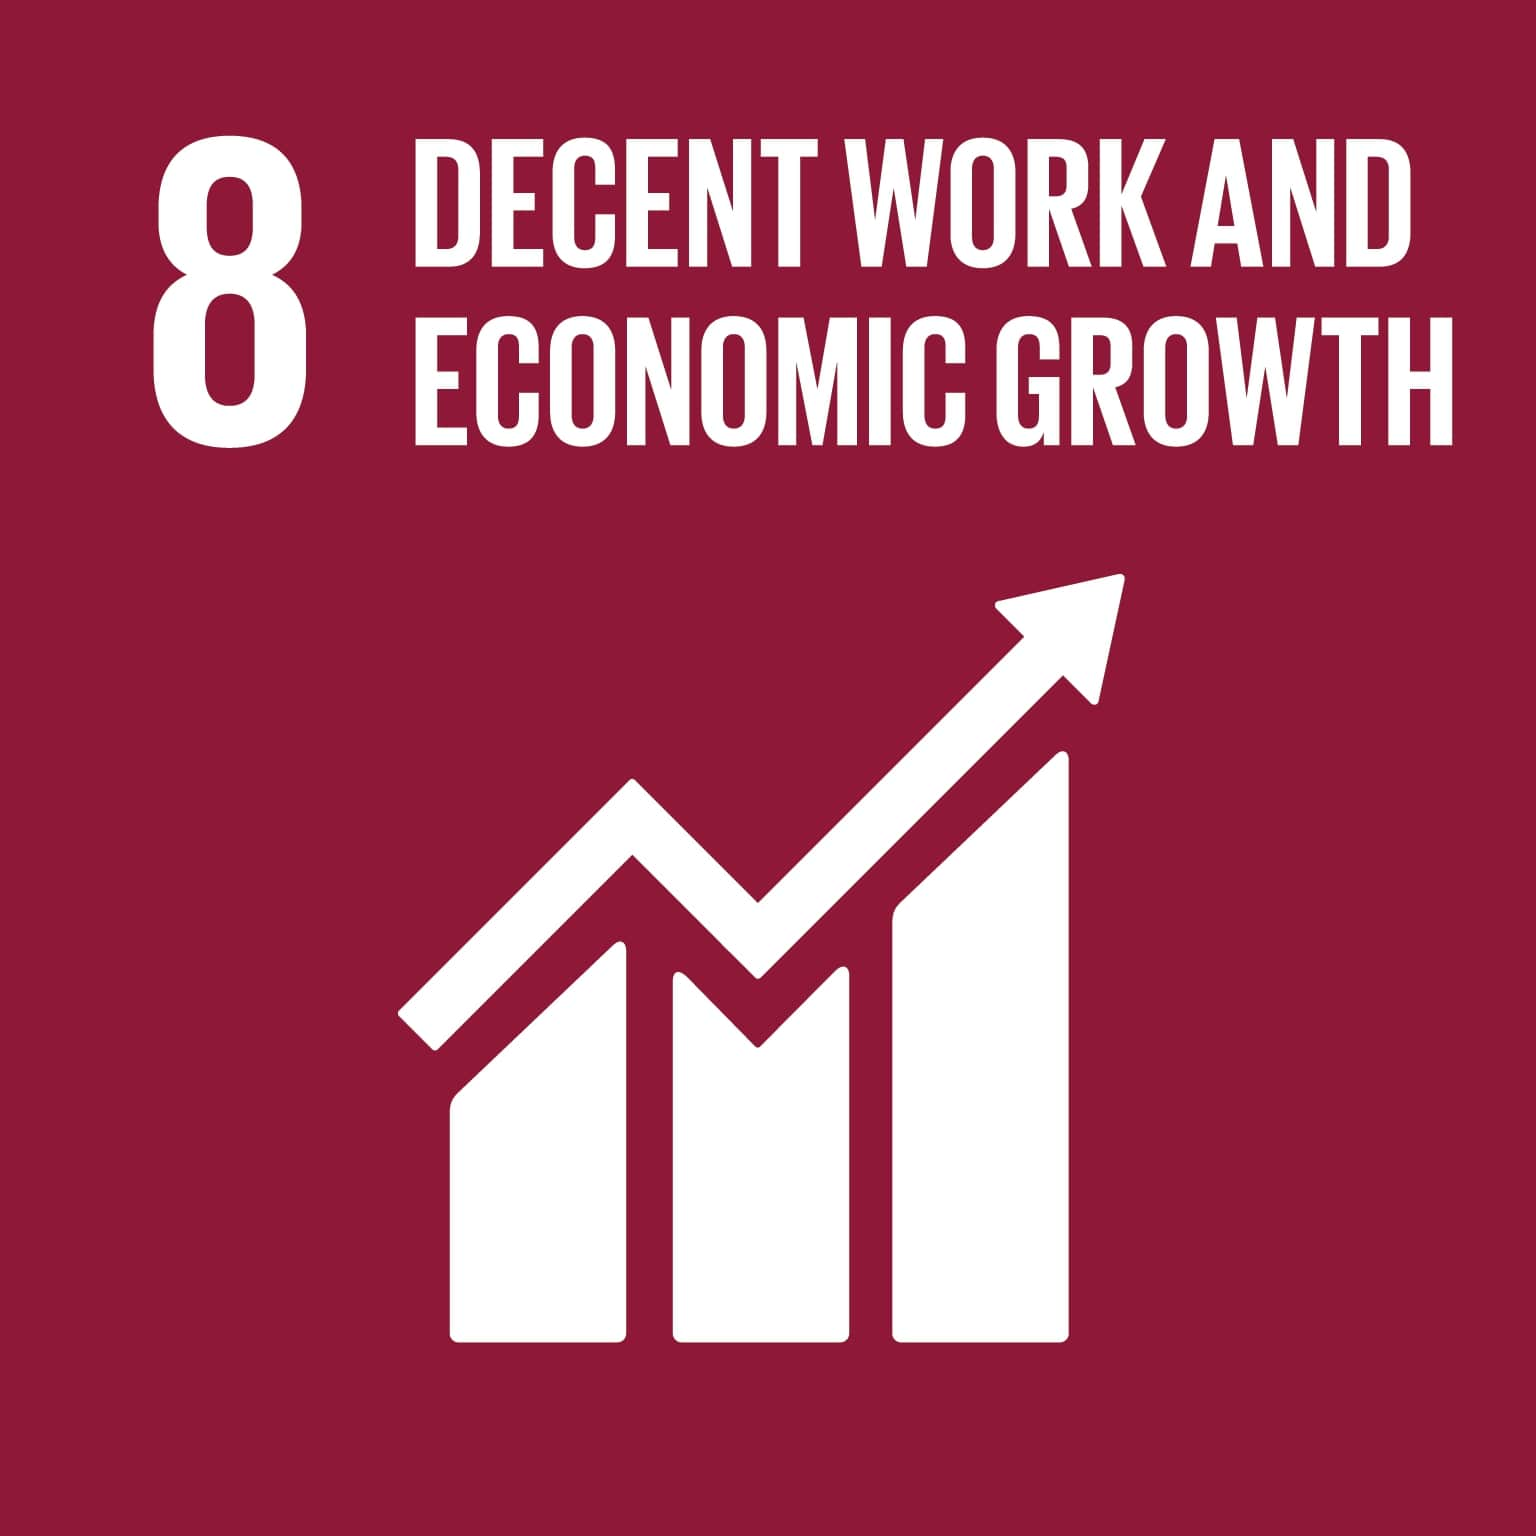 SUSTAINABLE DEVELOPMENT GOAL 8: Promote sustained, inclusive and sustainable economic growth, full and productive employment and decent work for all